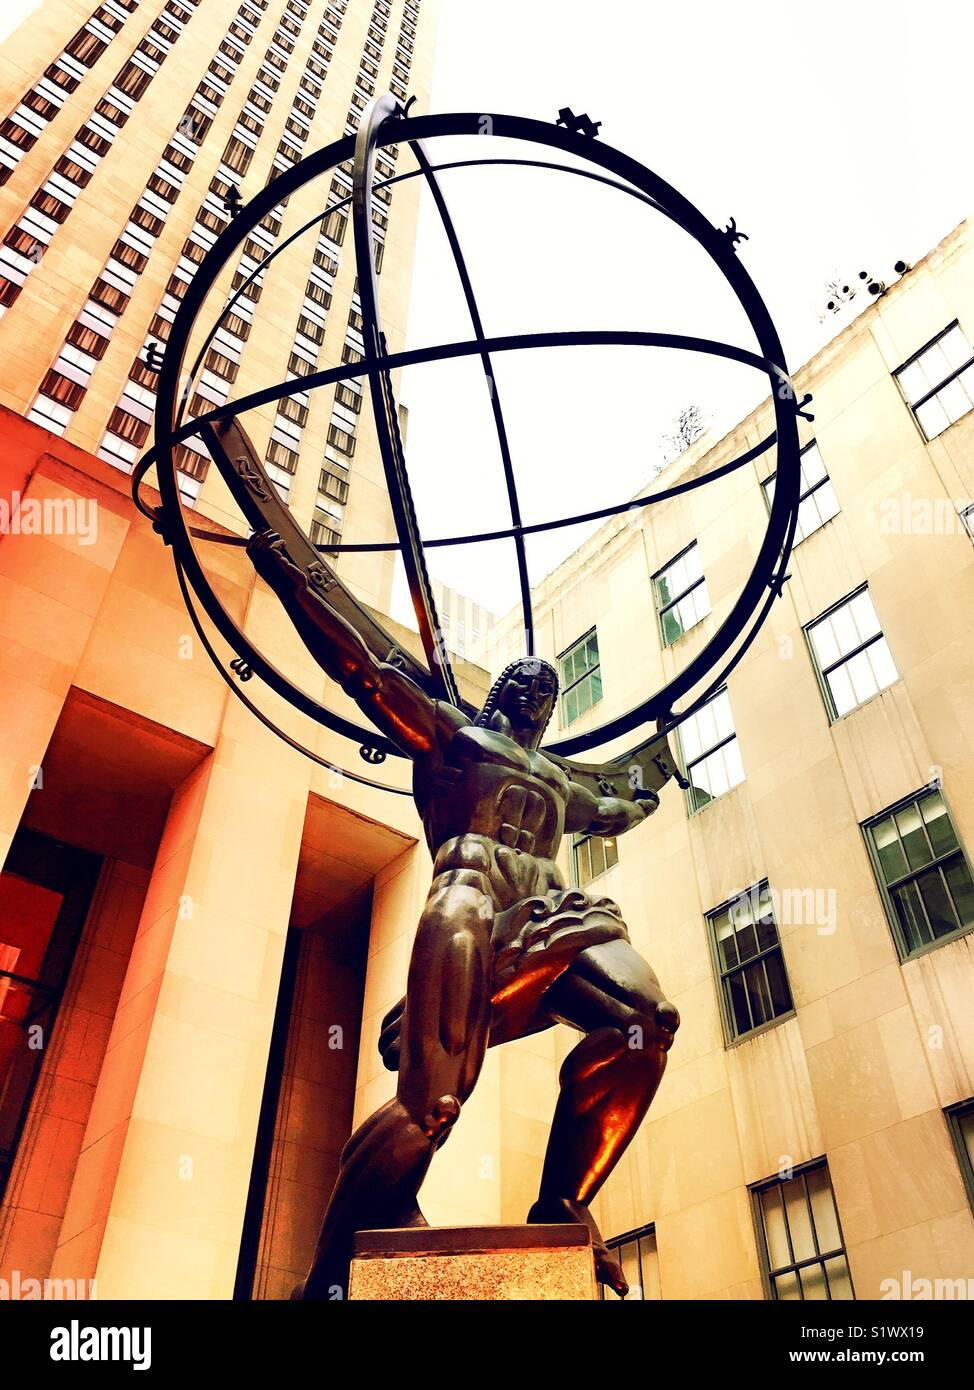 Atlas holding up the world statue, Rockefeller Center,NYC - Stock Image